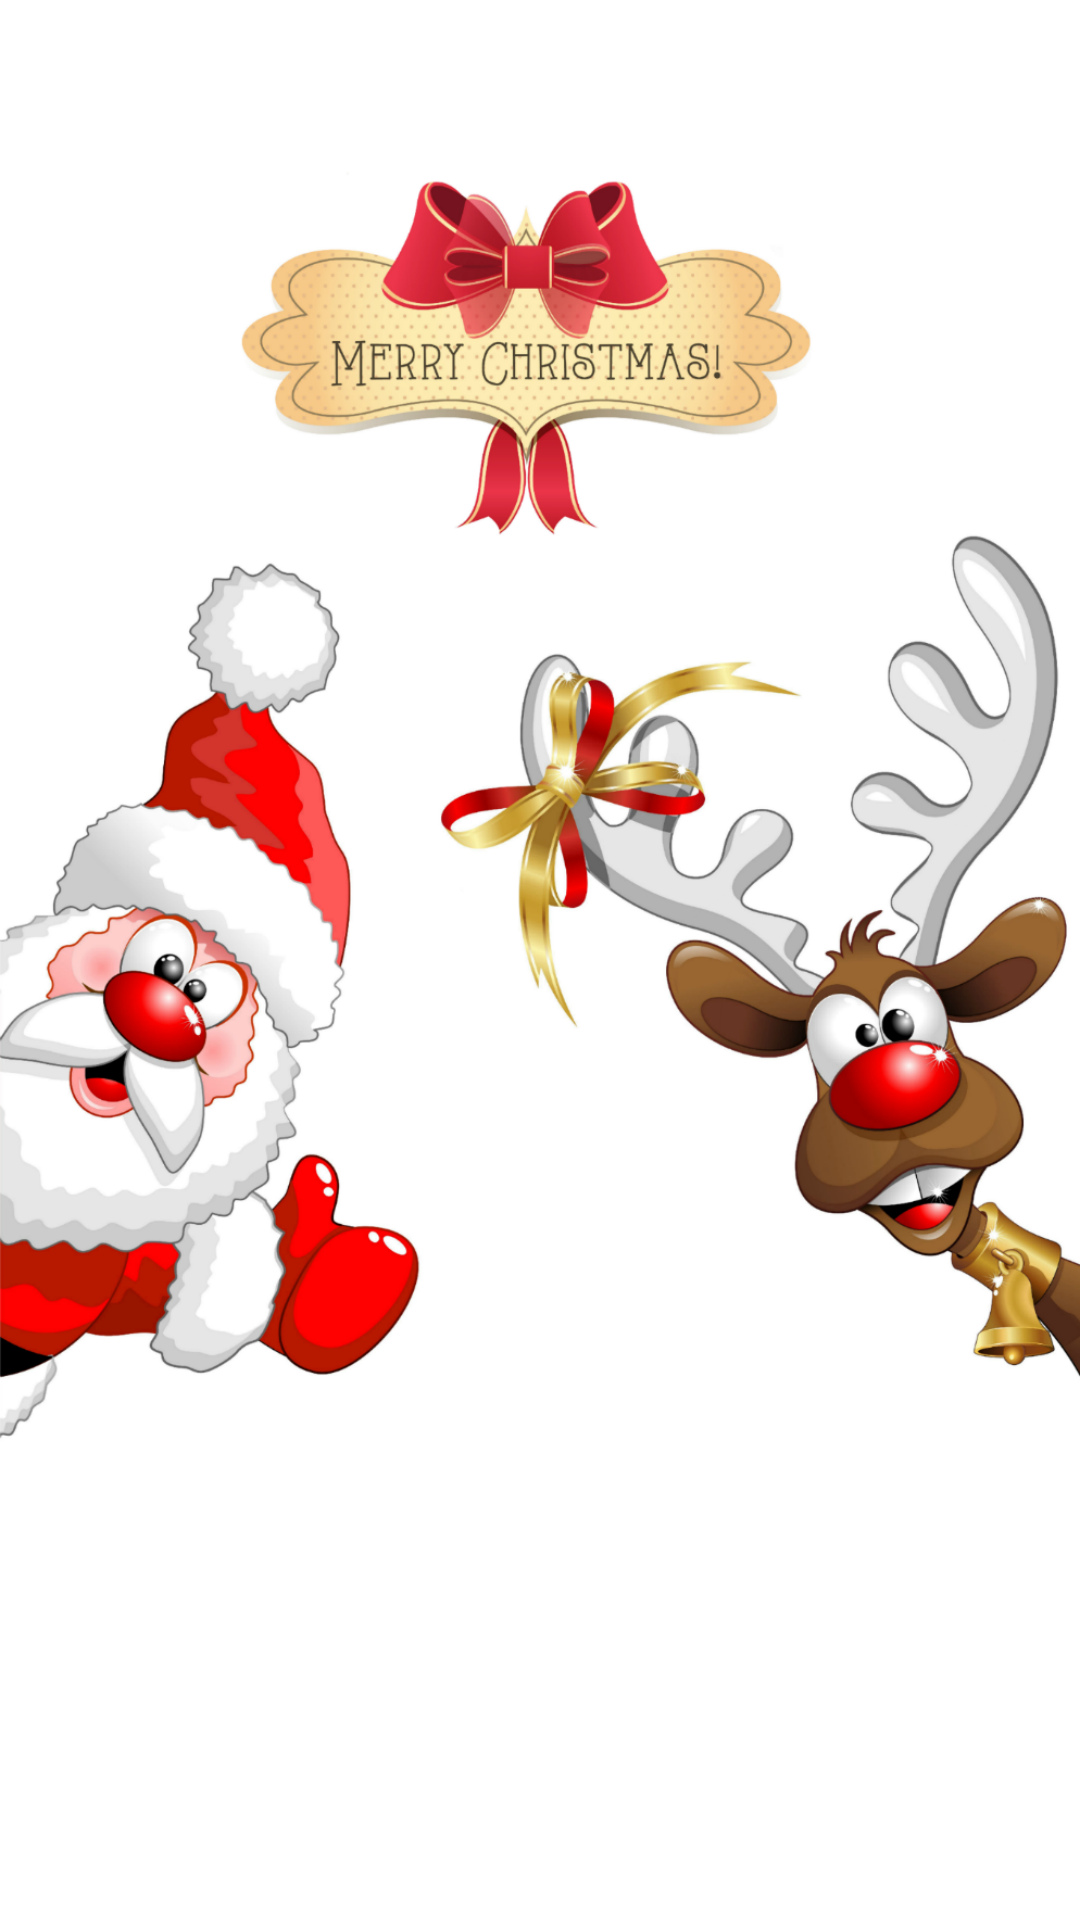 Cute Merry Christmas Wallpaper 2016 Winter Backgrounds For Iphone Hd Hd Wallpapers